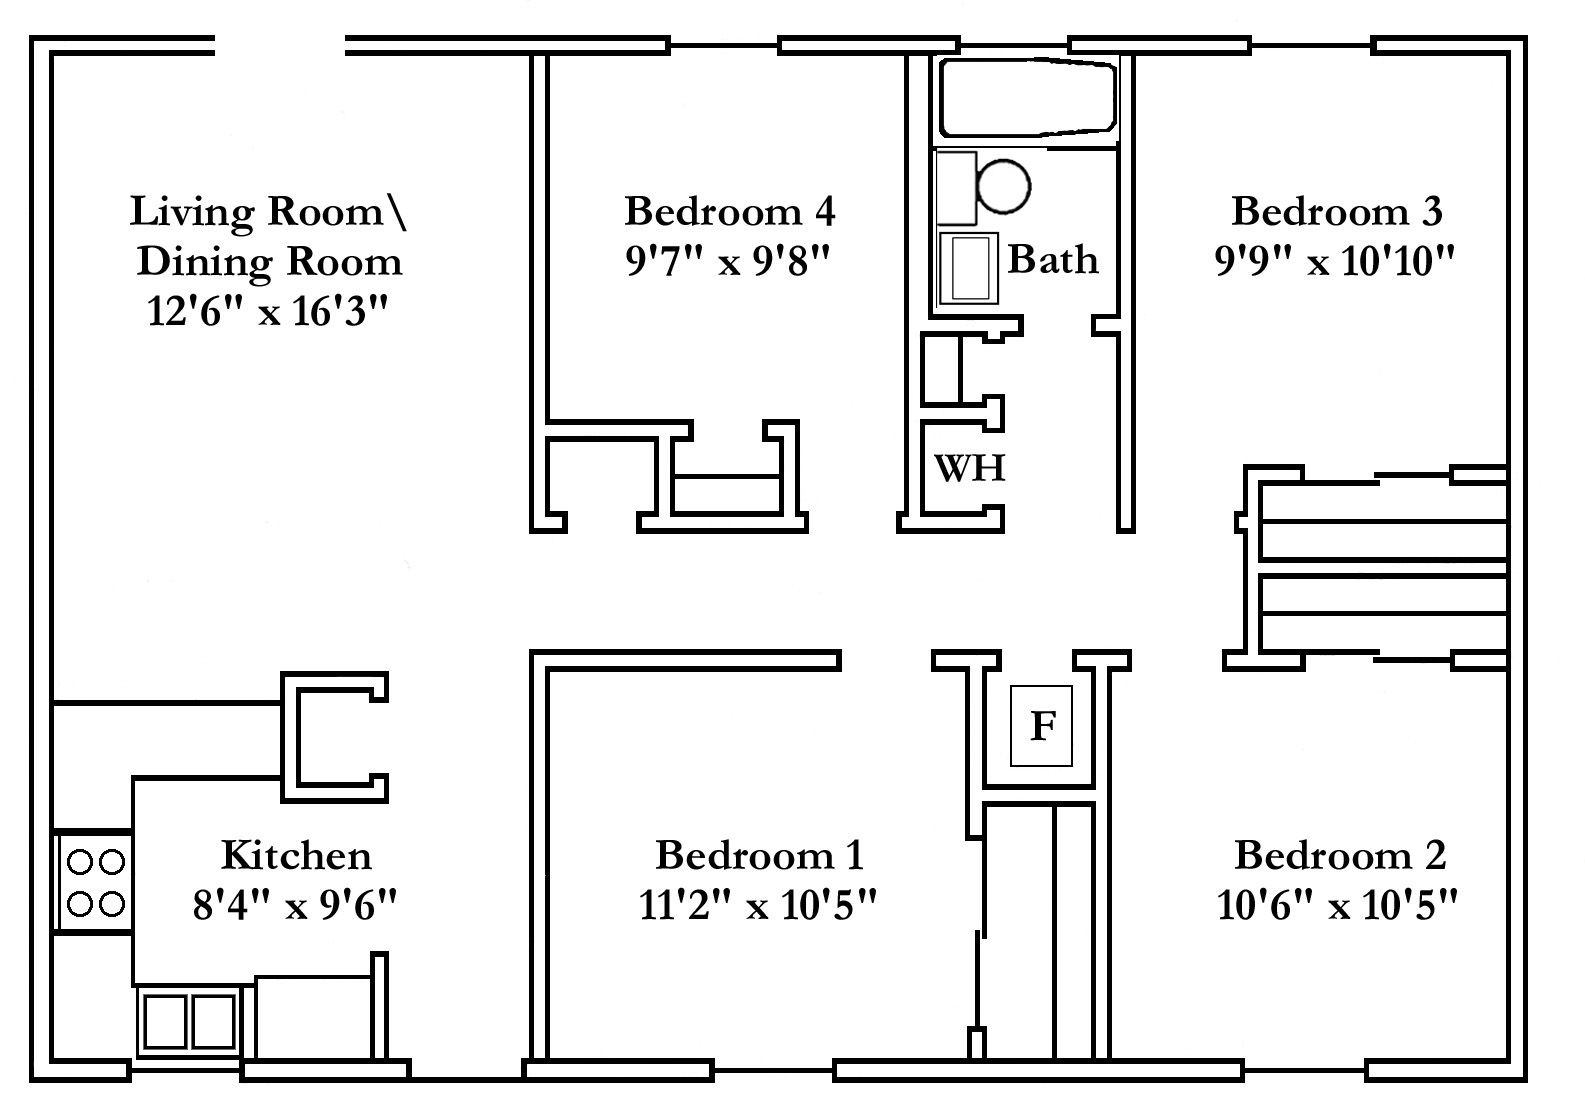 Small 4 bedroom house plans free typical floor plans powering silicon valley san jose - Houses bedroom first floor fit needs ...